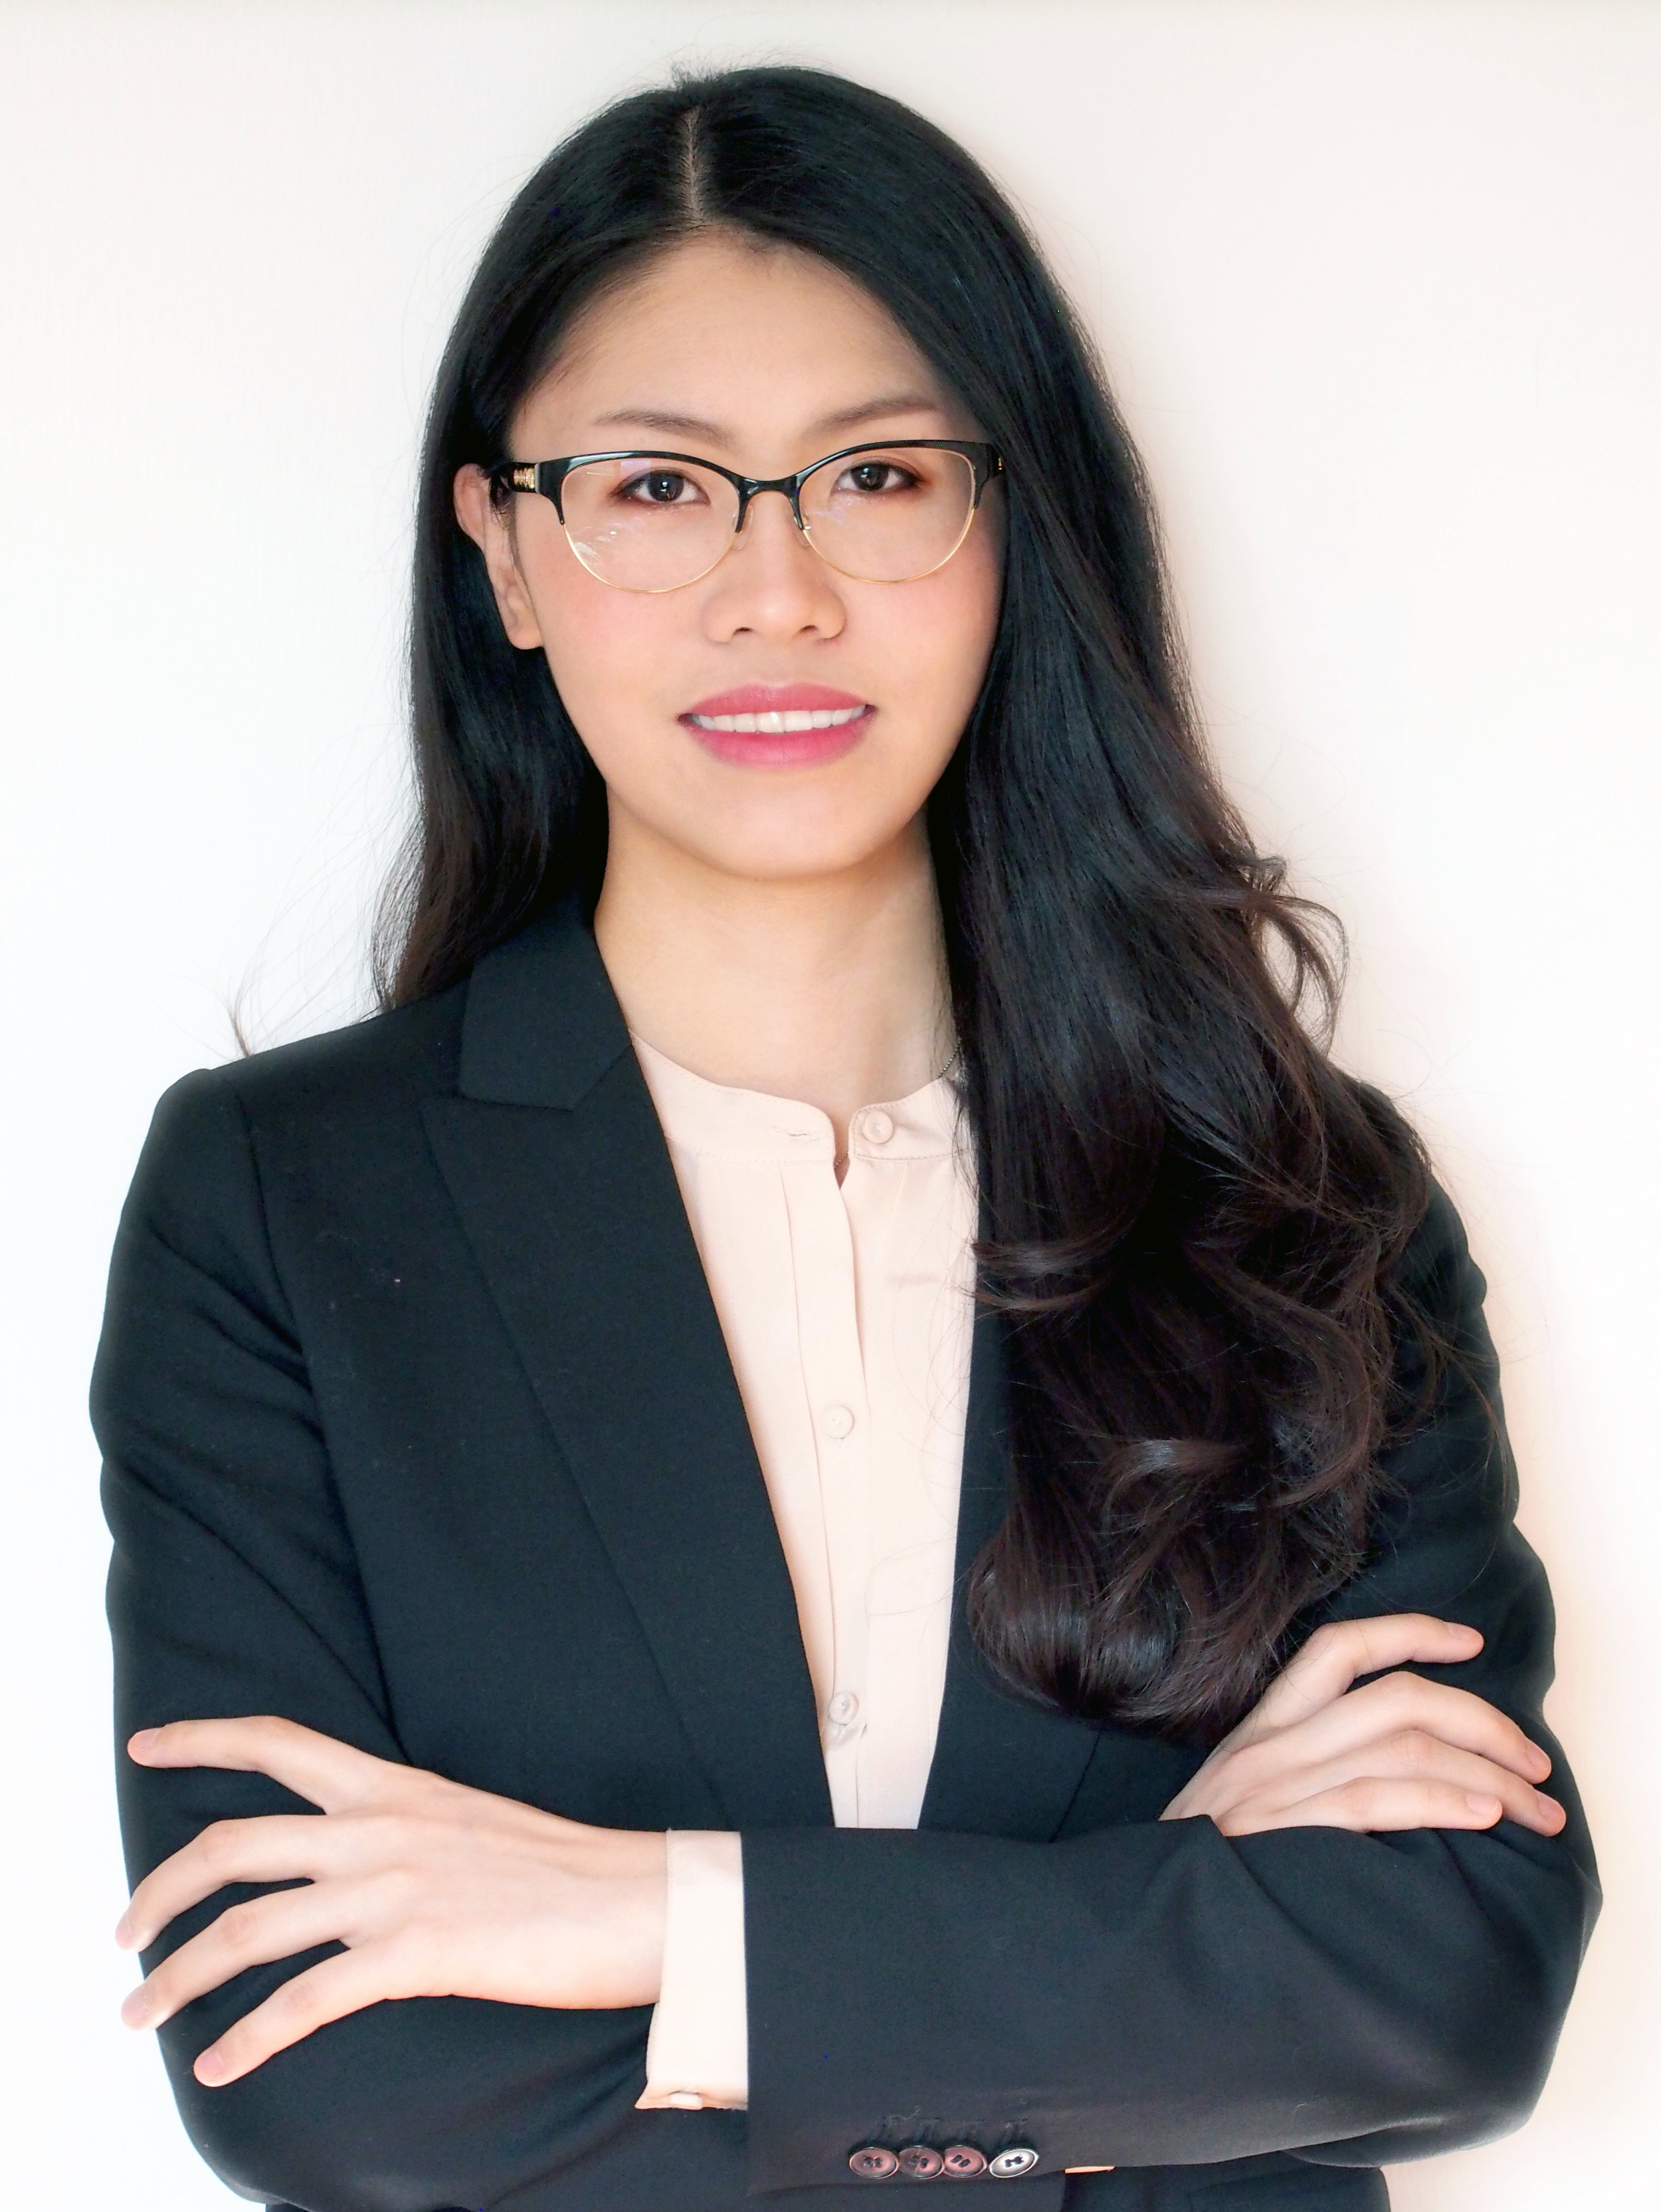 """Jen (Xiao Shi) Chen, Lawyer/Co-founding Partner - Jen is a licensed lawyer and a co-founding partner of JDC Law LLP. Her practice focuses primarily on managing real estate and corporate/commercial transactions. In particular, Jen enjoys representing clients in real estate leasing matters, including assisting clients with drafting, review, and negotiation.Jen's approach to legal services is the utmost commitment to her clients. She is determined to provide a level of service and guidance that would bring value to her clients. Jen is a firm believer of unique solutions and is both creative and proactive. Jen always keep her clients informed and involved in all step of the way.Prior to JDC Law, Jen completed her articles with a downtown Toronto firm annually ranked as a top 5 commercial real estate boutique law firm in Canada. Jen has also worked at one of the busiest Toronto residential real estate law firm. Over the years, she provided excellent services to clients in both corporate/commercial real estate and residential real estate practice areas.Interesting Facts: Jen was born as a member of an ethnic minority group in China (the """"Bai"""" people). Jen is an animal lover and a proud amateur chef. Jen's meaningful quote to share: """"Very little is needed to make a happy life; it is all within yourself in your way of thinking.""""Memberships:Law Society of Upper CanadaCanadian Bar AssociationOntario Bar Association – Real Estate and LeasingToronto Lawyers AssociationEducation and Qualifications:Bar of OntarioOsgoode Hall Law School, J.D.Queen's University, B.A. Honours (Psychology)"""